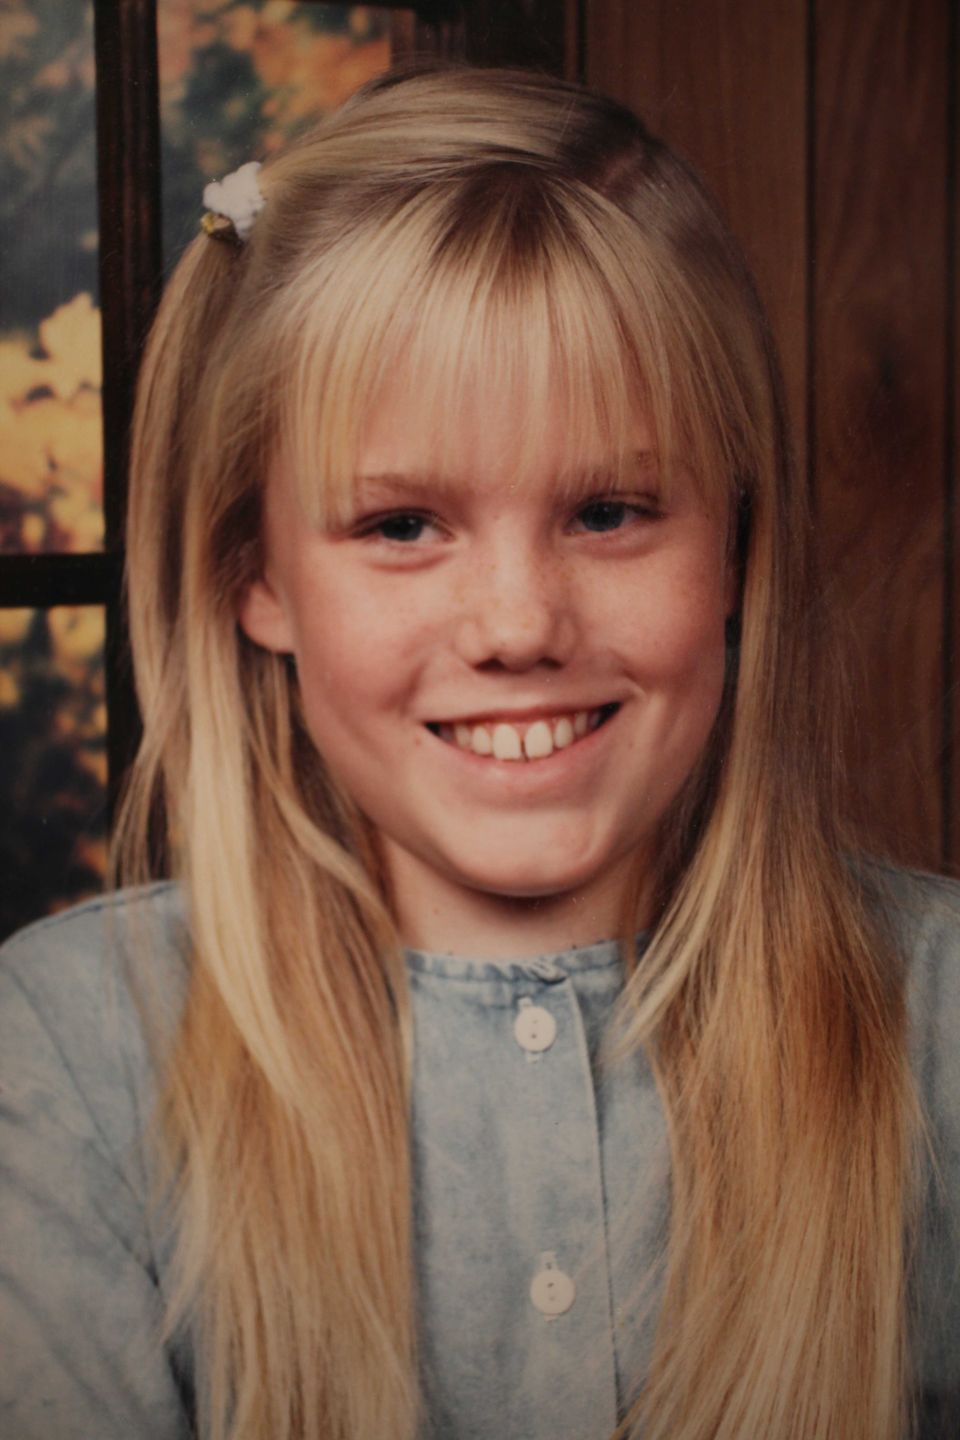 Dugard was abducted in June 1991 on her way to school in South Lake Tahoe, California. Then 11, she was held for 18 years by